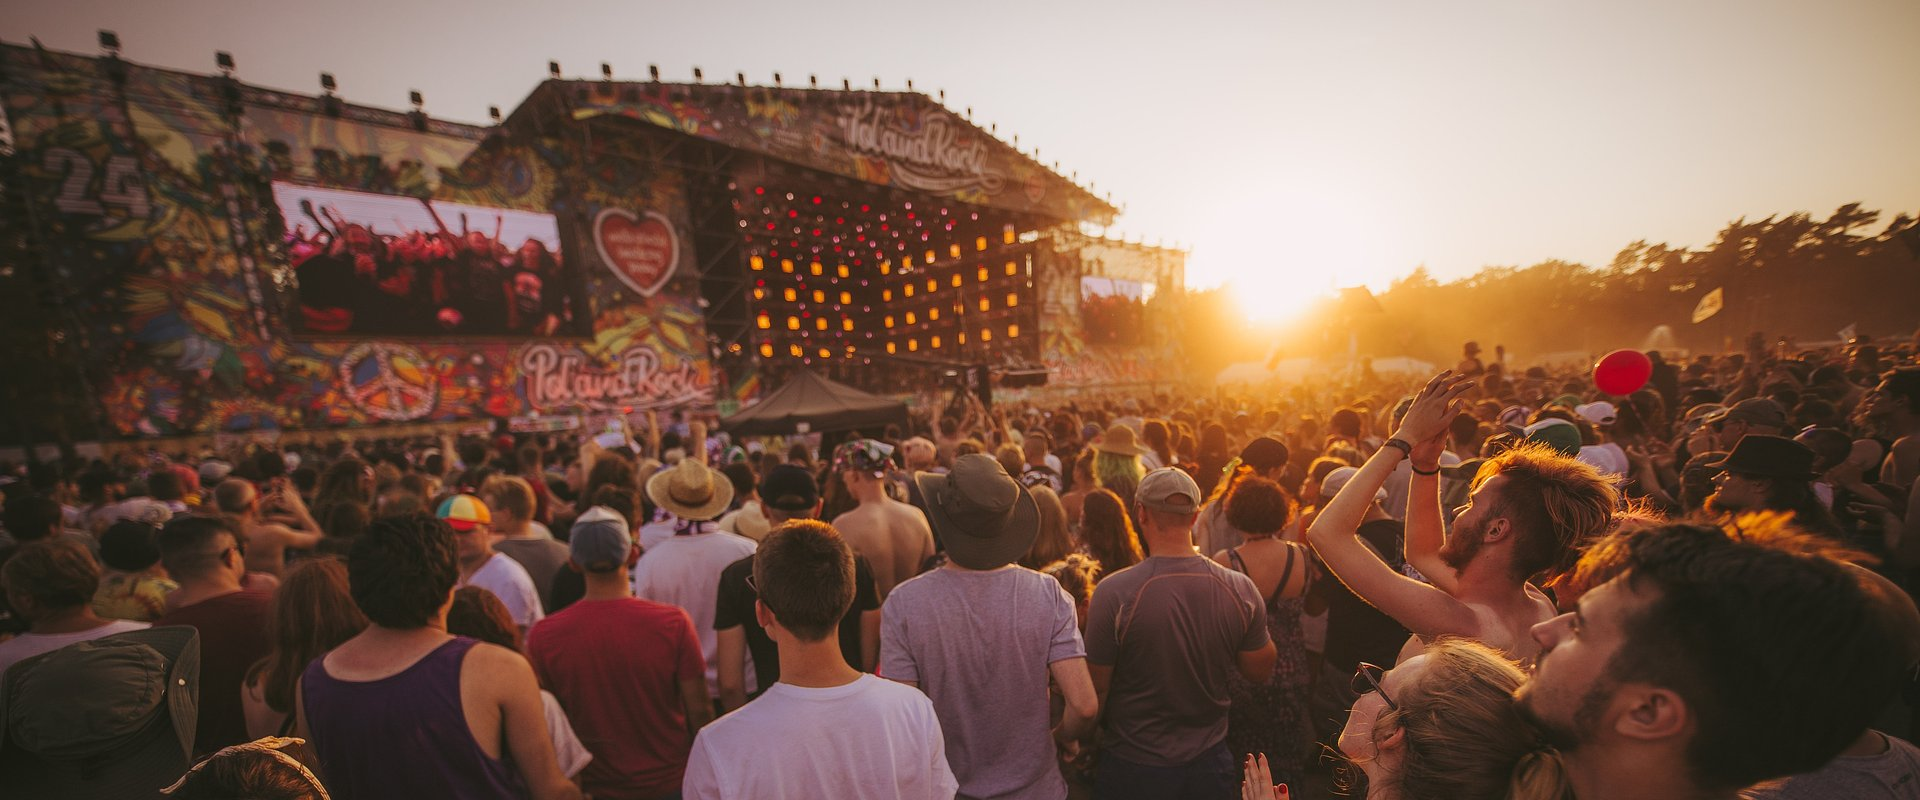 Get Your Accreditation for Pol'and'Rock Festival 2020 Online